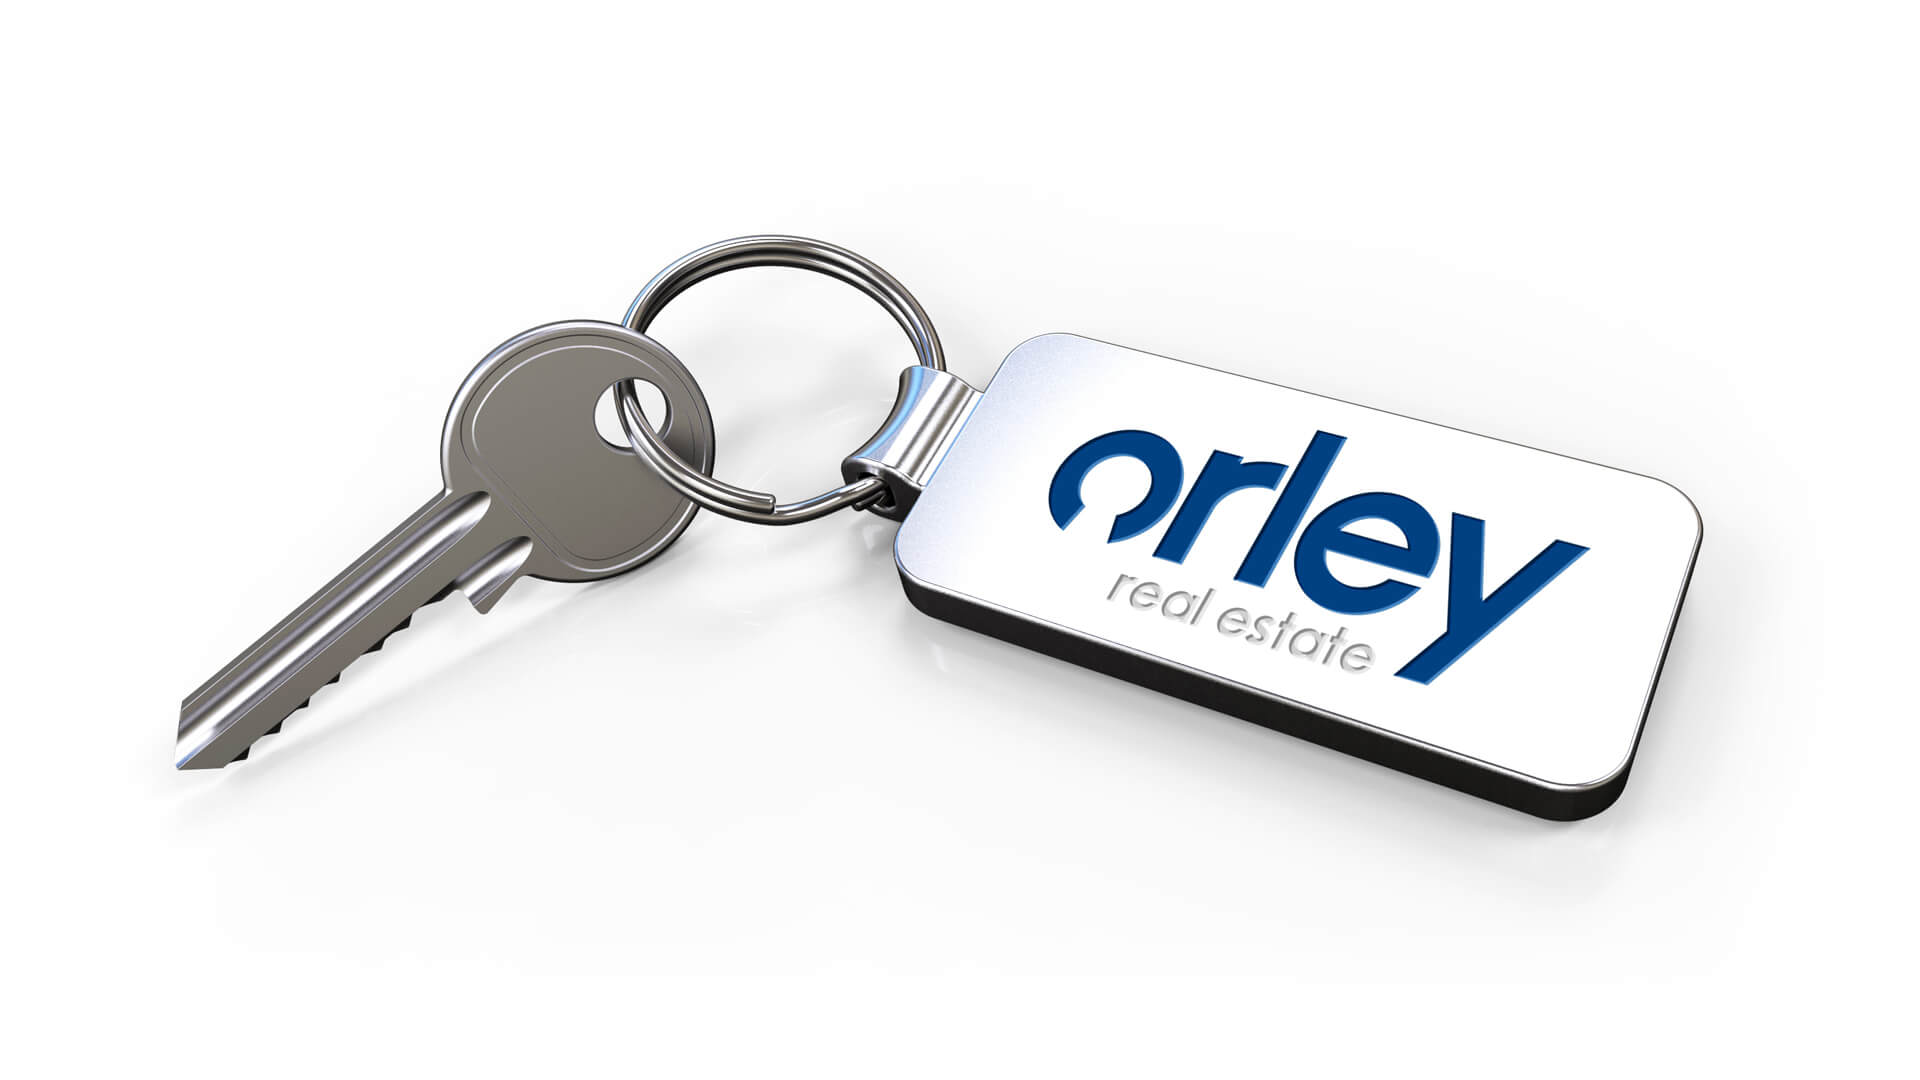 Orley Real Estate Keyring